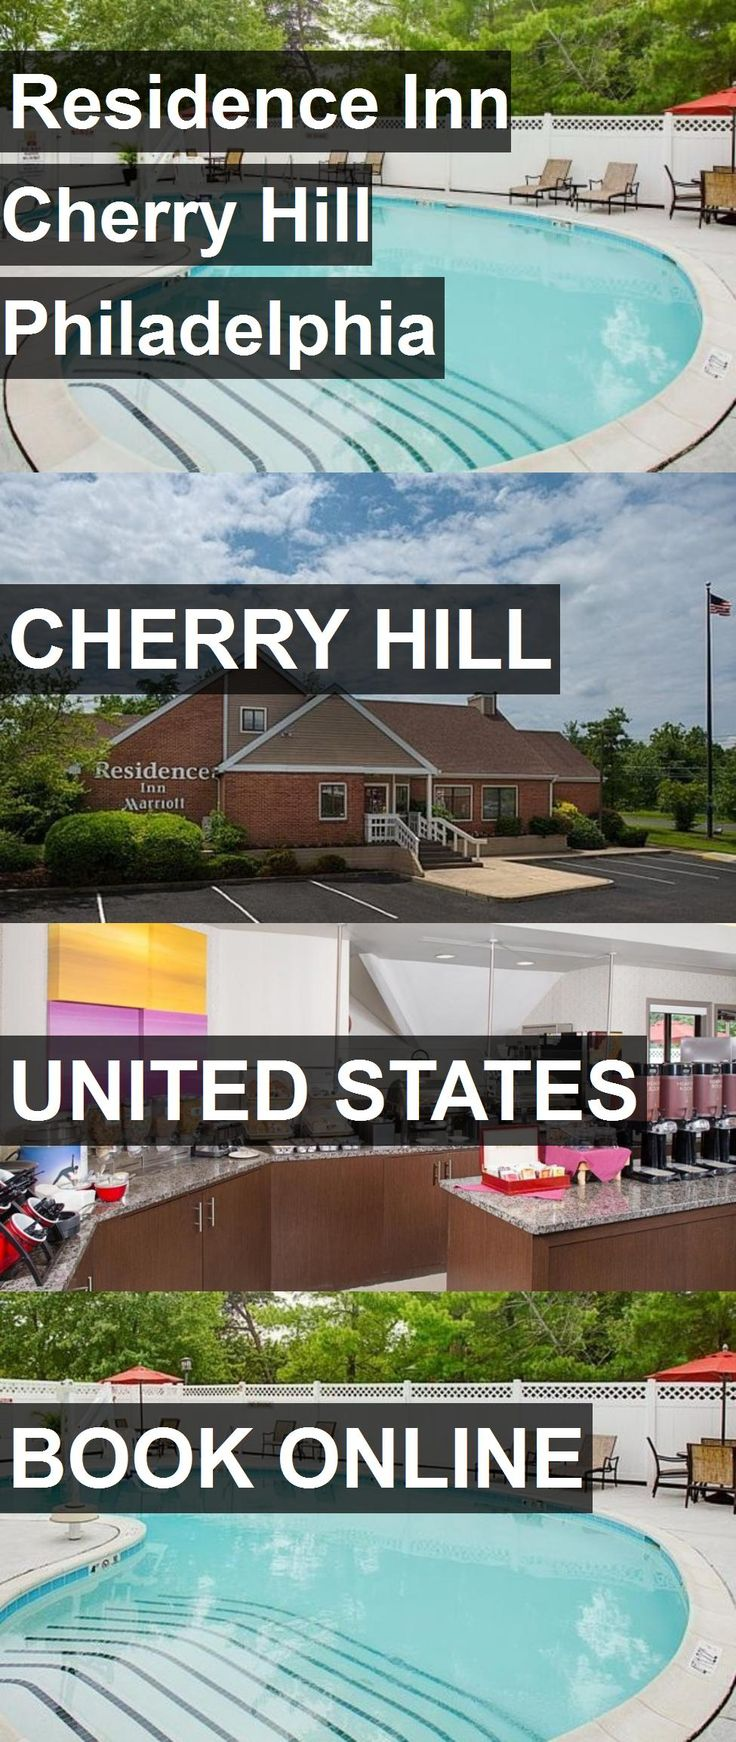 Hotel Residence Inn Cherry Hill Philadelphia in Cherry Hill, United States. For more information, photos, reviews and best prices please follow the link. #UnitedStates #CherryHill #ResidenceInnCherryHillPhiladelphia #hotel #travel #vacation